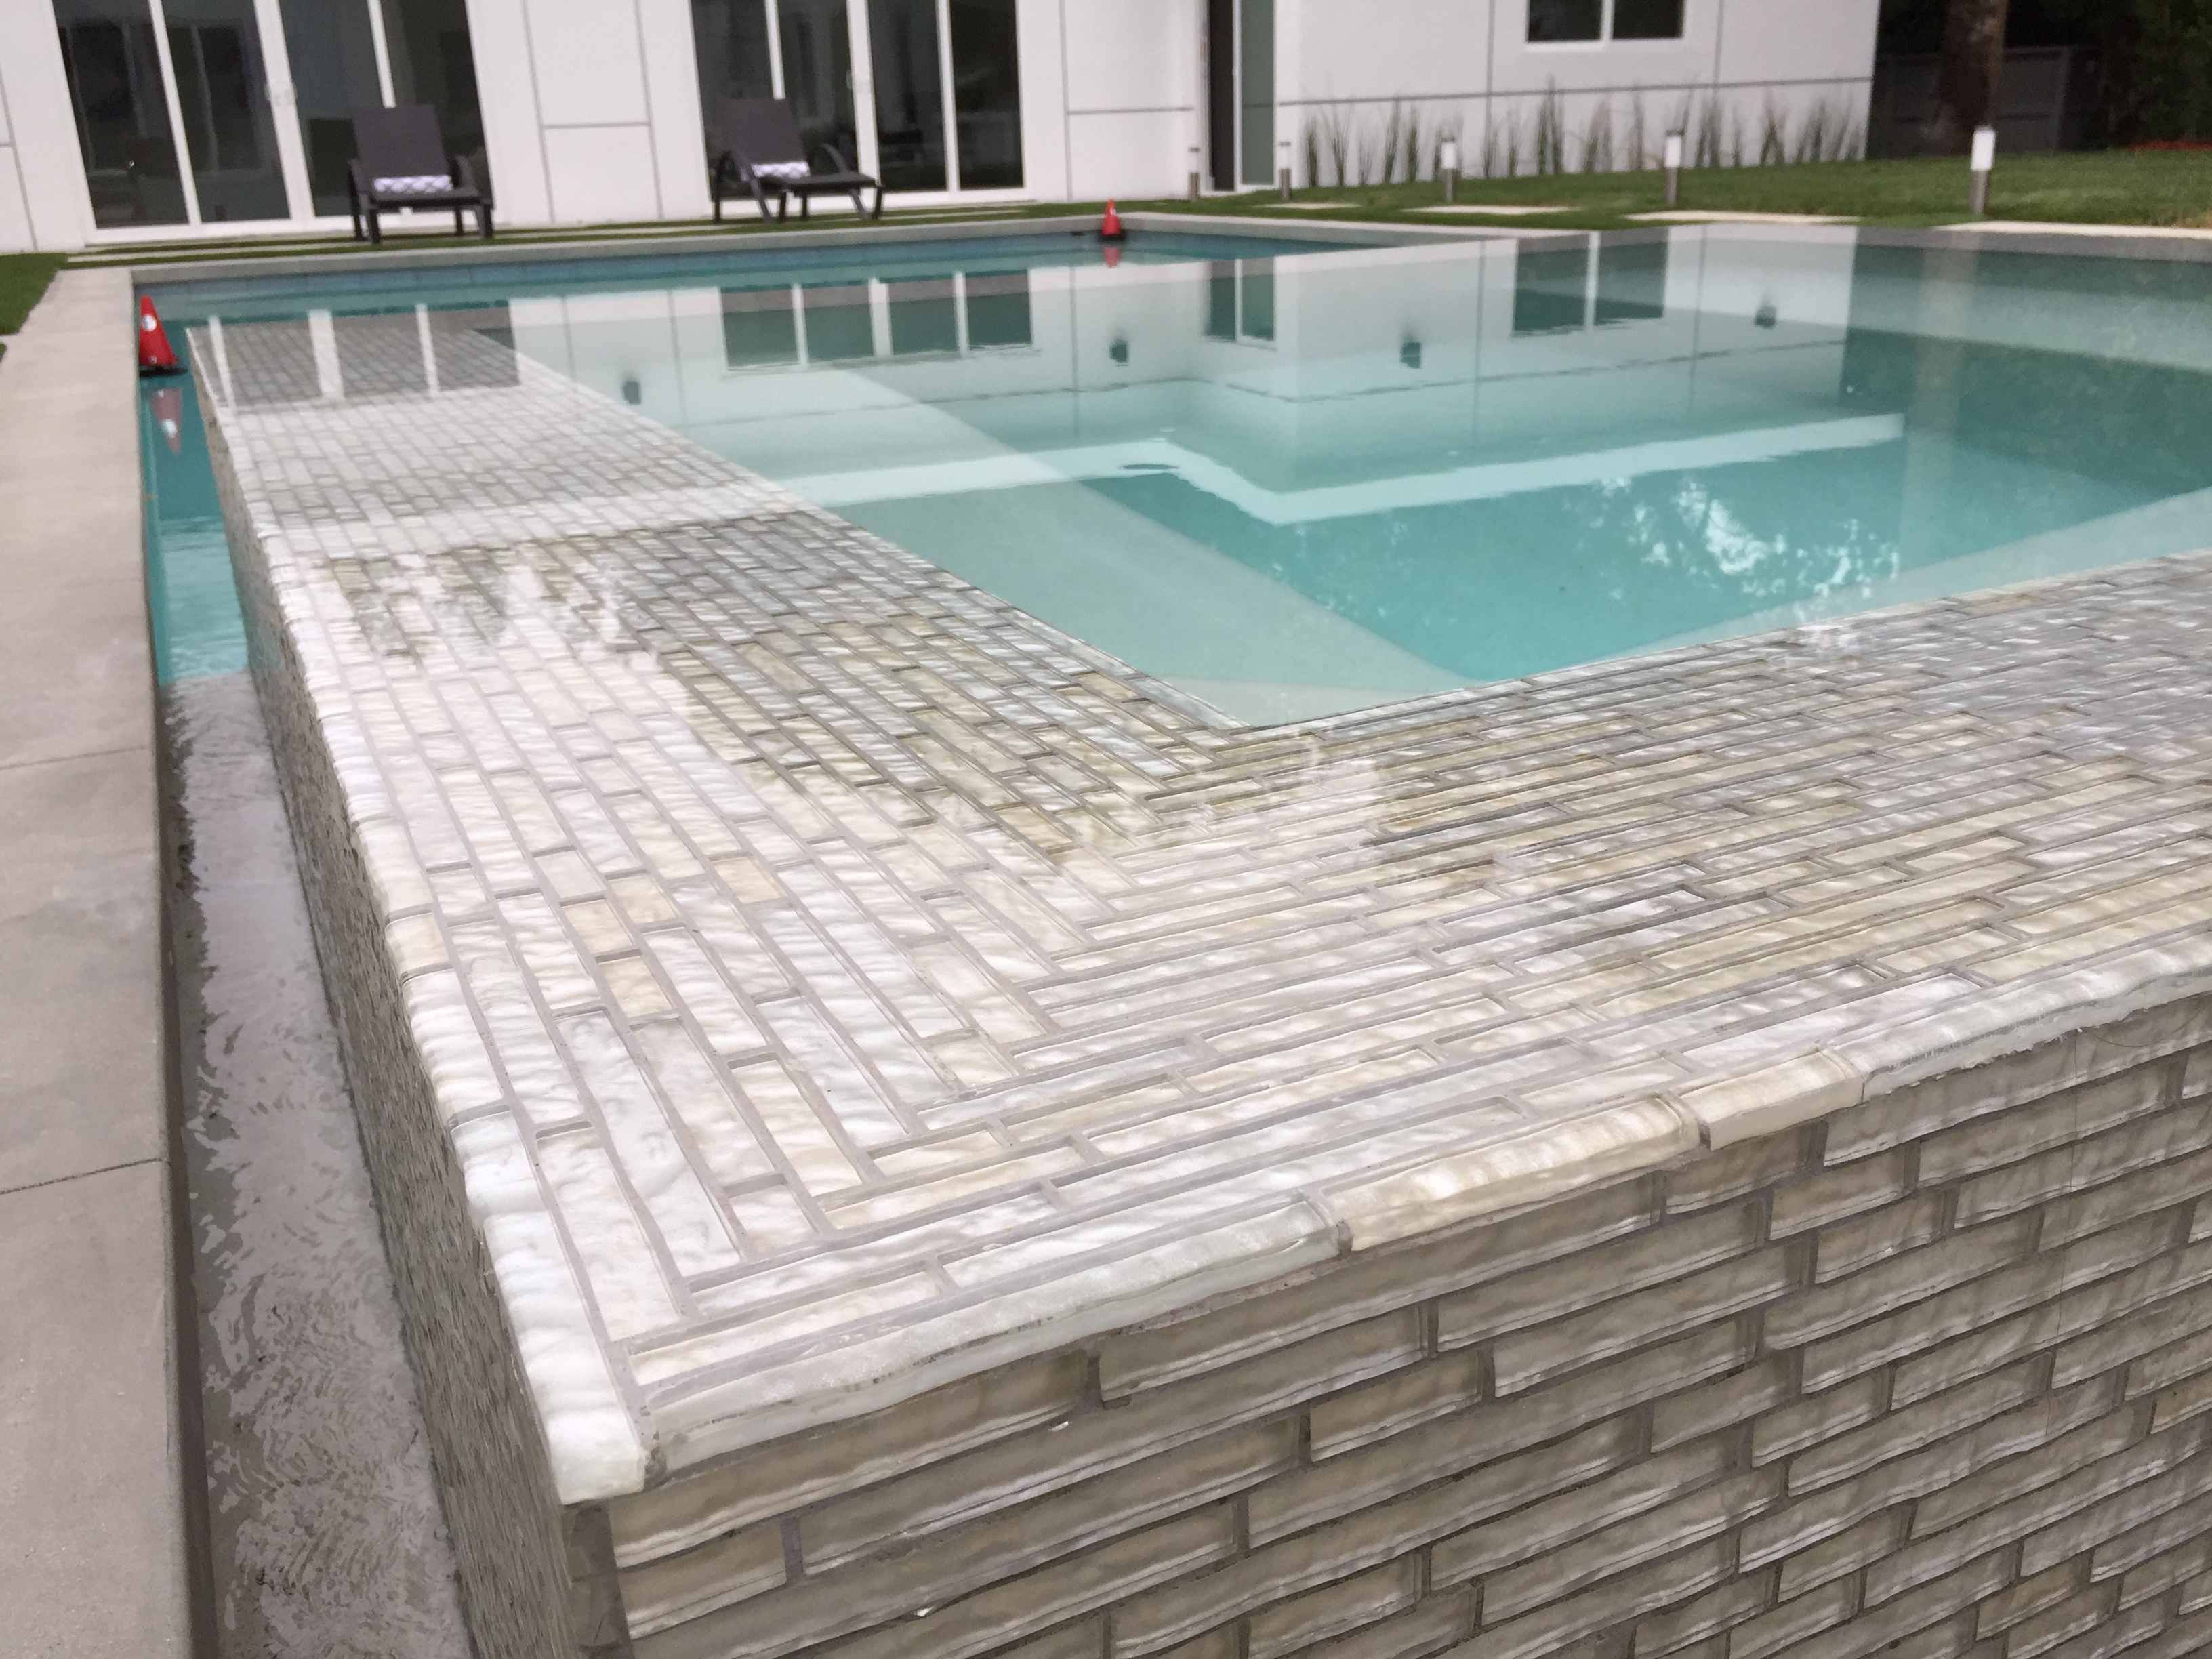 Modern Tiled Spa and Pool Edge